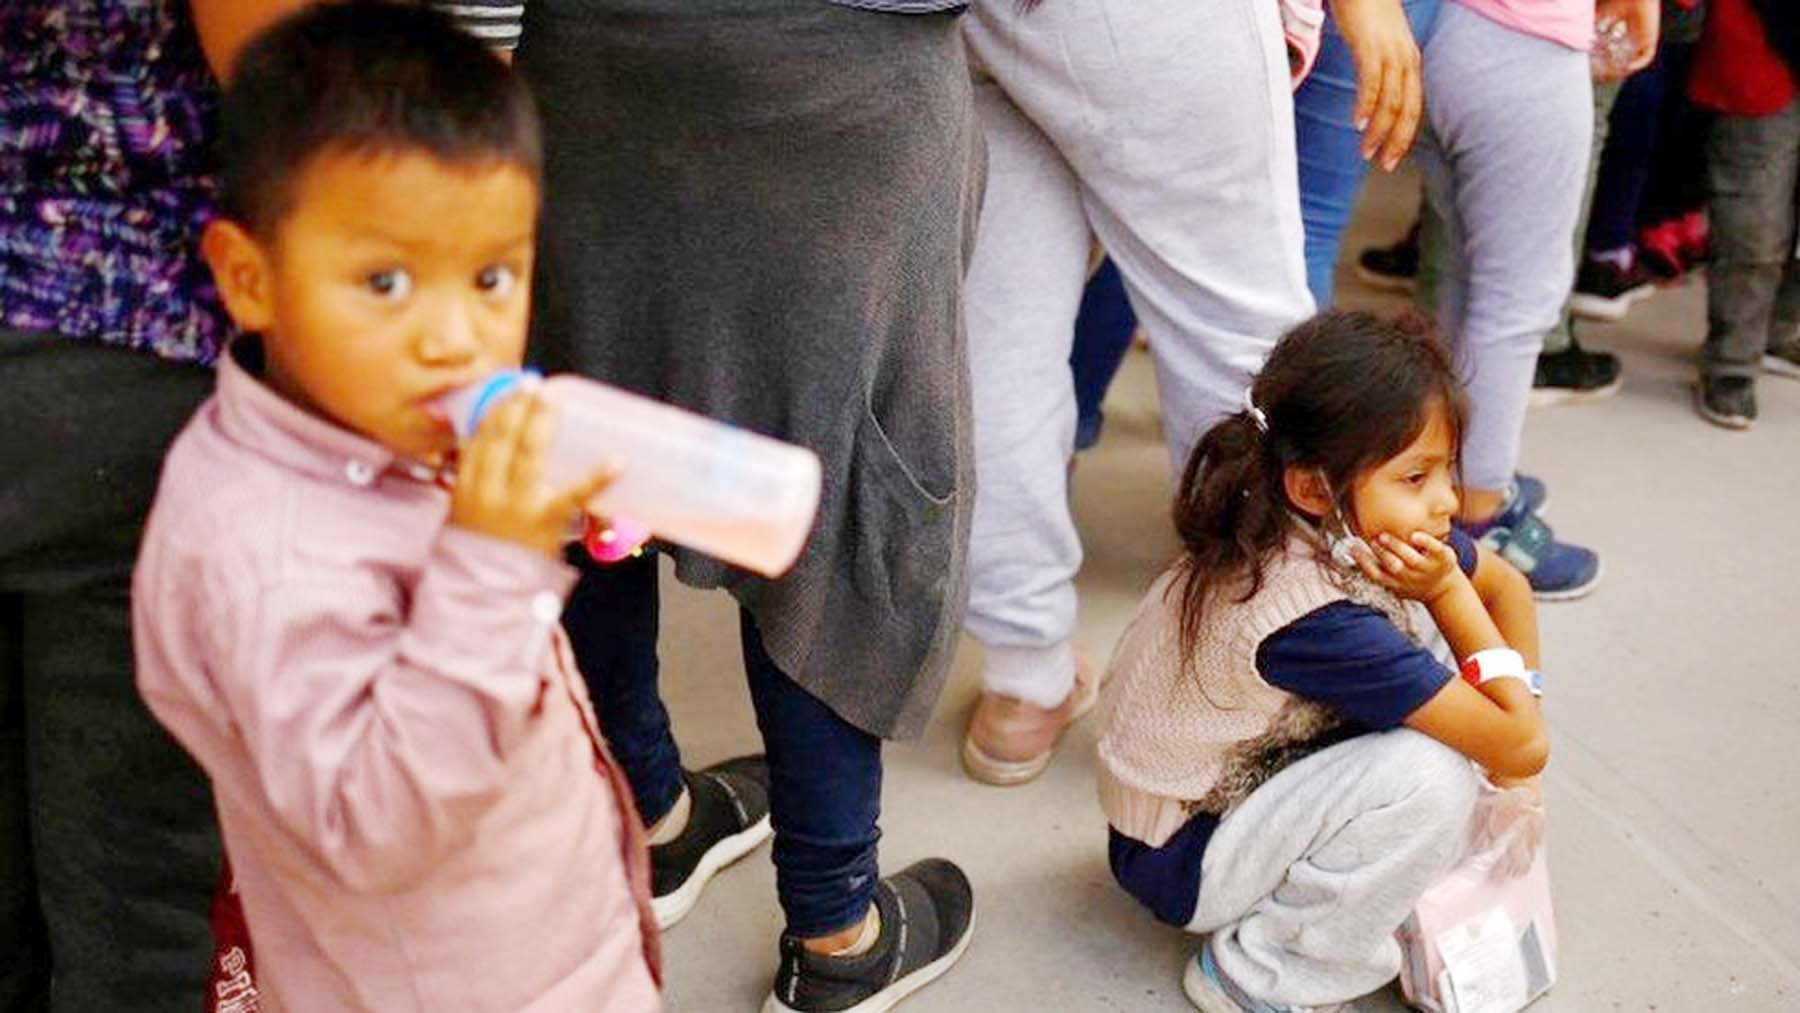 Number of migrant children on rises Mexico-US border BBC Online The number of migrant children trying to reach the US from Mexico has increased ninefold since the start of 2021, UN children's agency Unicef says. The rise from 380 to nearly 3,500 has overwhelmed the facilities at Mexico's reception centres, it says. The children are mainly from Honduras, Guatemala, El Salvador and Mexico itself. Half arrived without parents. Nearly 300 children are added to their number every day, as they wait to cross into the US or are sent back. In border towns like Reynosa migrant families are establishing makeshift camps.